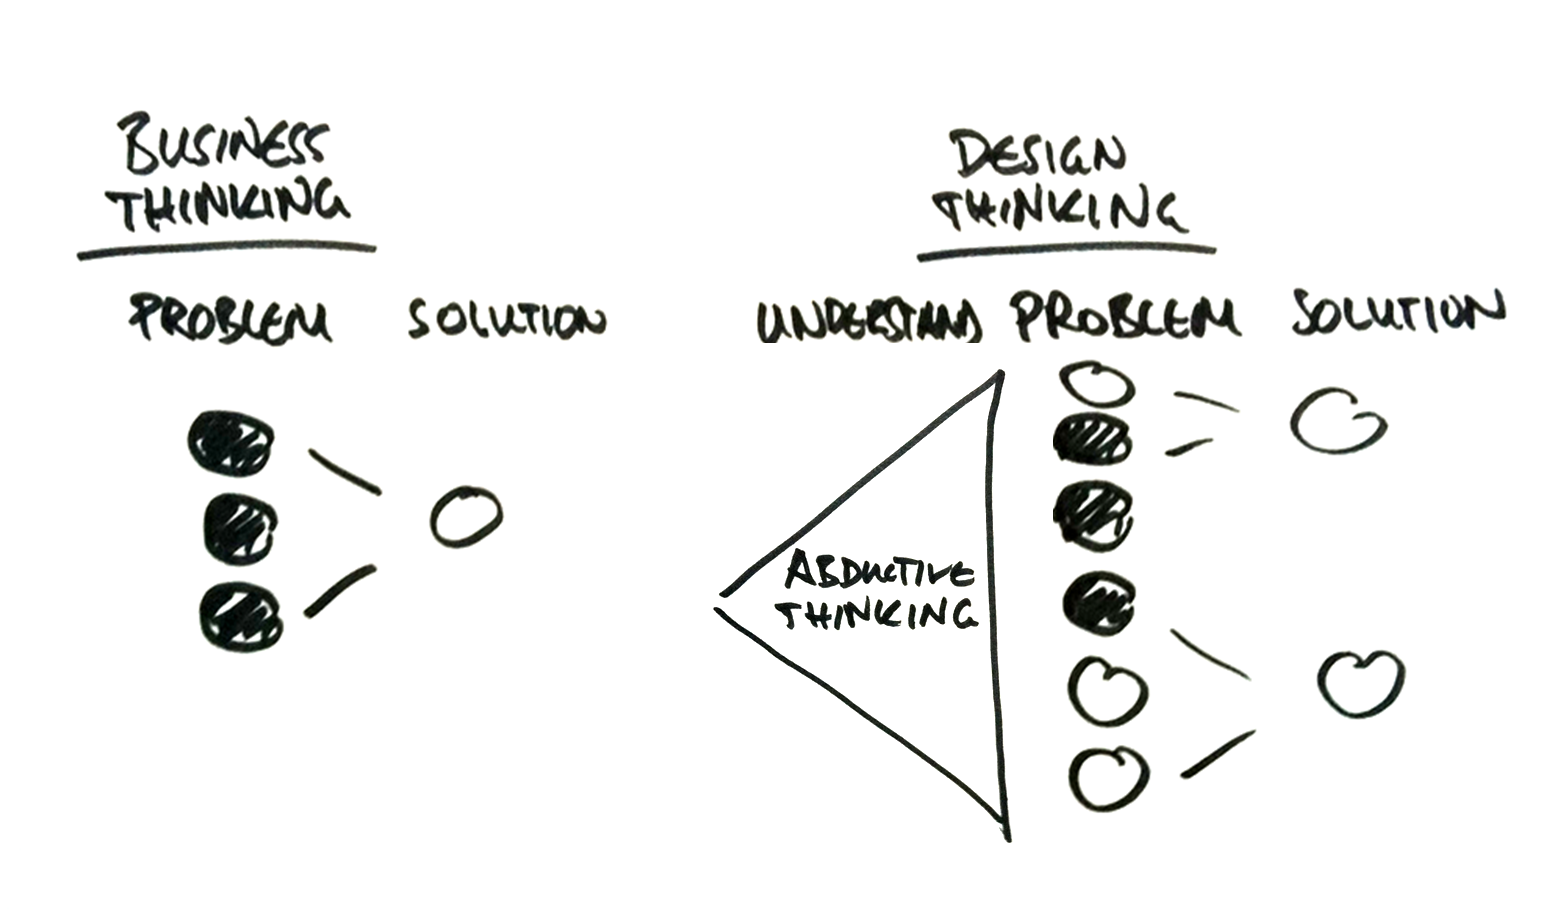 17 Best images about Design thinking, Business Model, Creativity ...